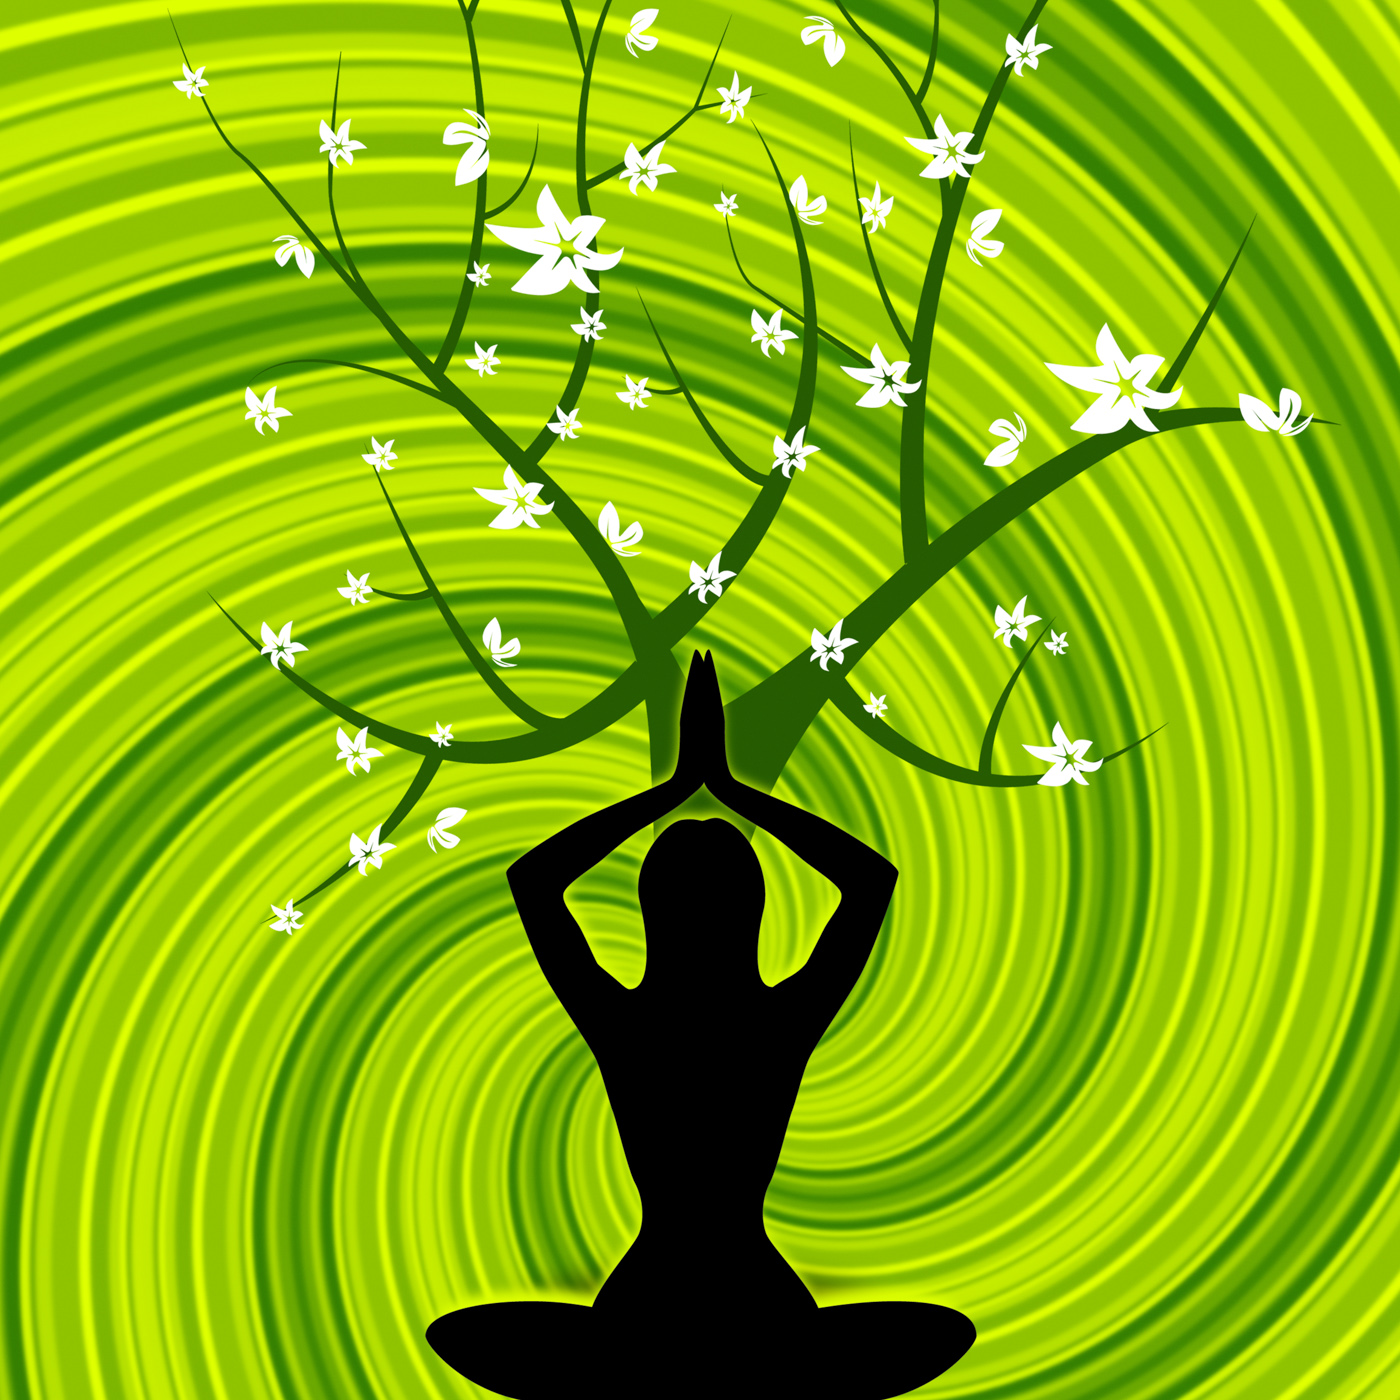 Free Photo Yoga Pose Means Relaxing Relaxation And